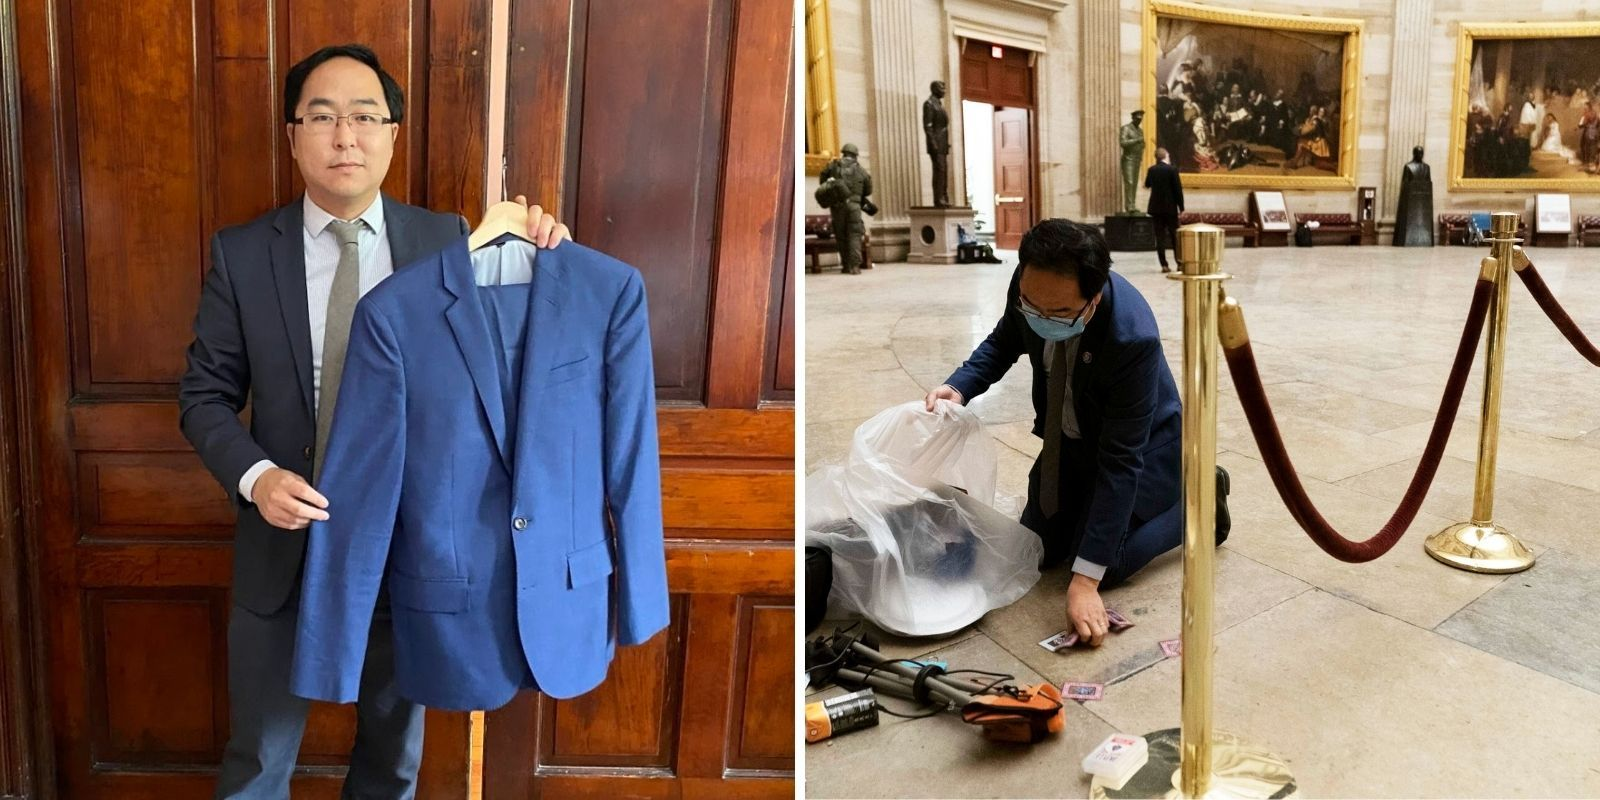 New Jersey congressman donates suit he wore during Jan 6 riot to the Smithsonian as museum artifact